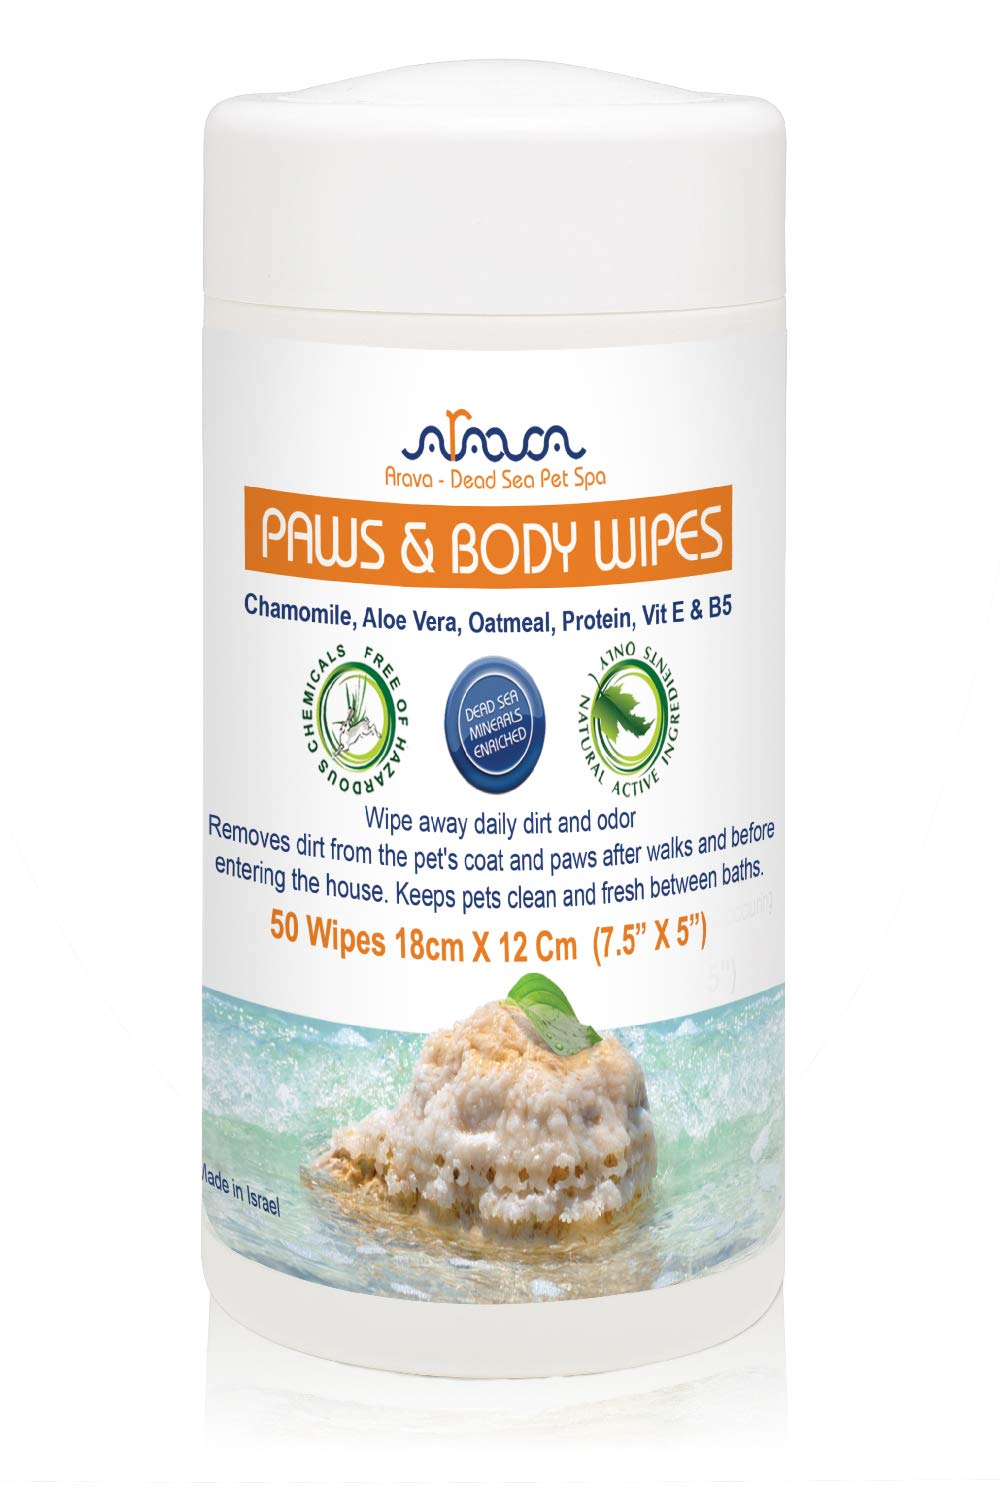 """Arava Natural Dog & Cat Grooming Wipes - Pet Cleansing Wipes for Dogs Cats Puppies Kittens - for Paws & Body - Remove Dirt Dust & Odors - Gentle Cleansing & Deodorizing Formula - 50 Count (7.5"""" x 5"""")"""